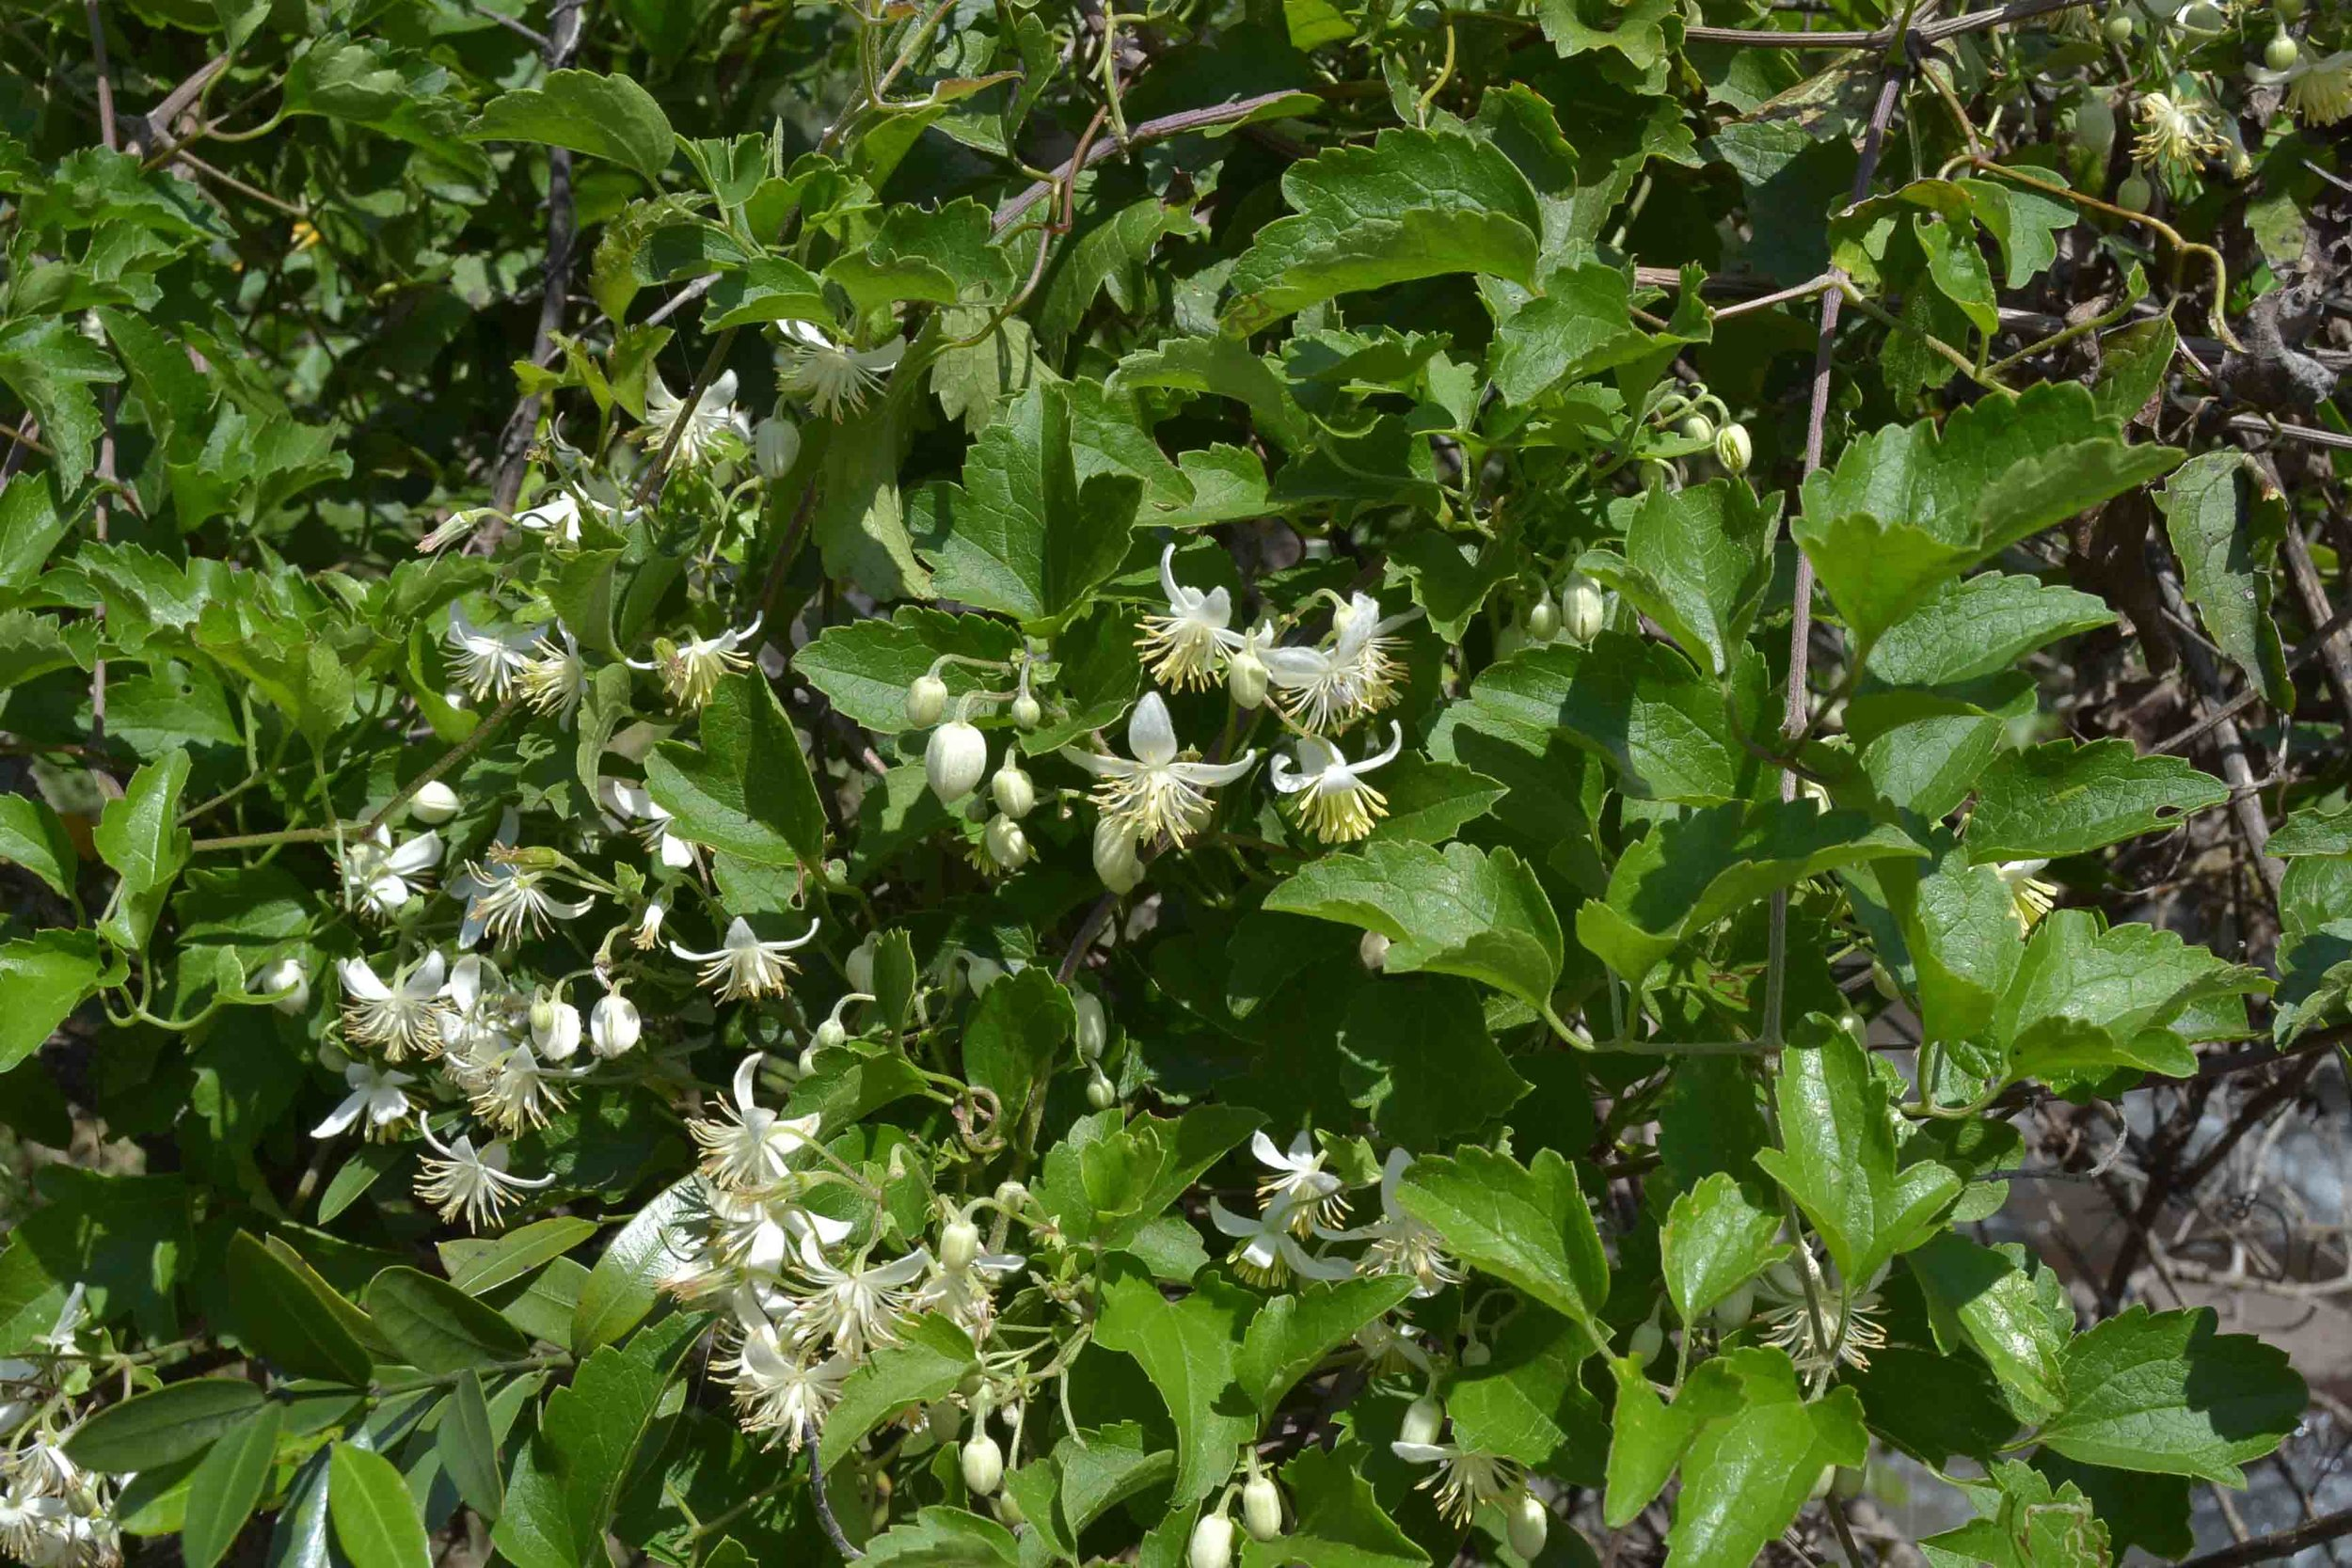 Clematis bracteata  (Travellers Joy) - beautifully scented dainty white flowers make this an ideal creeper